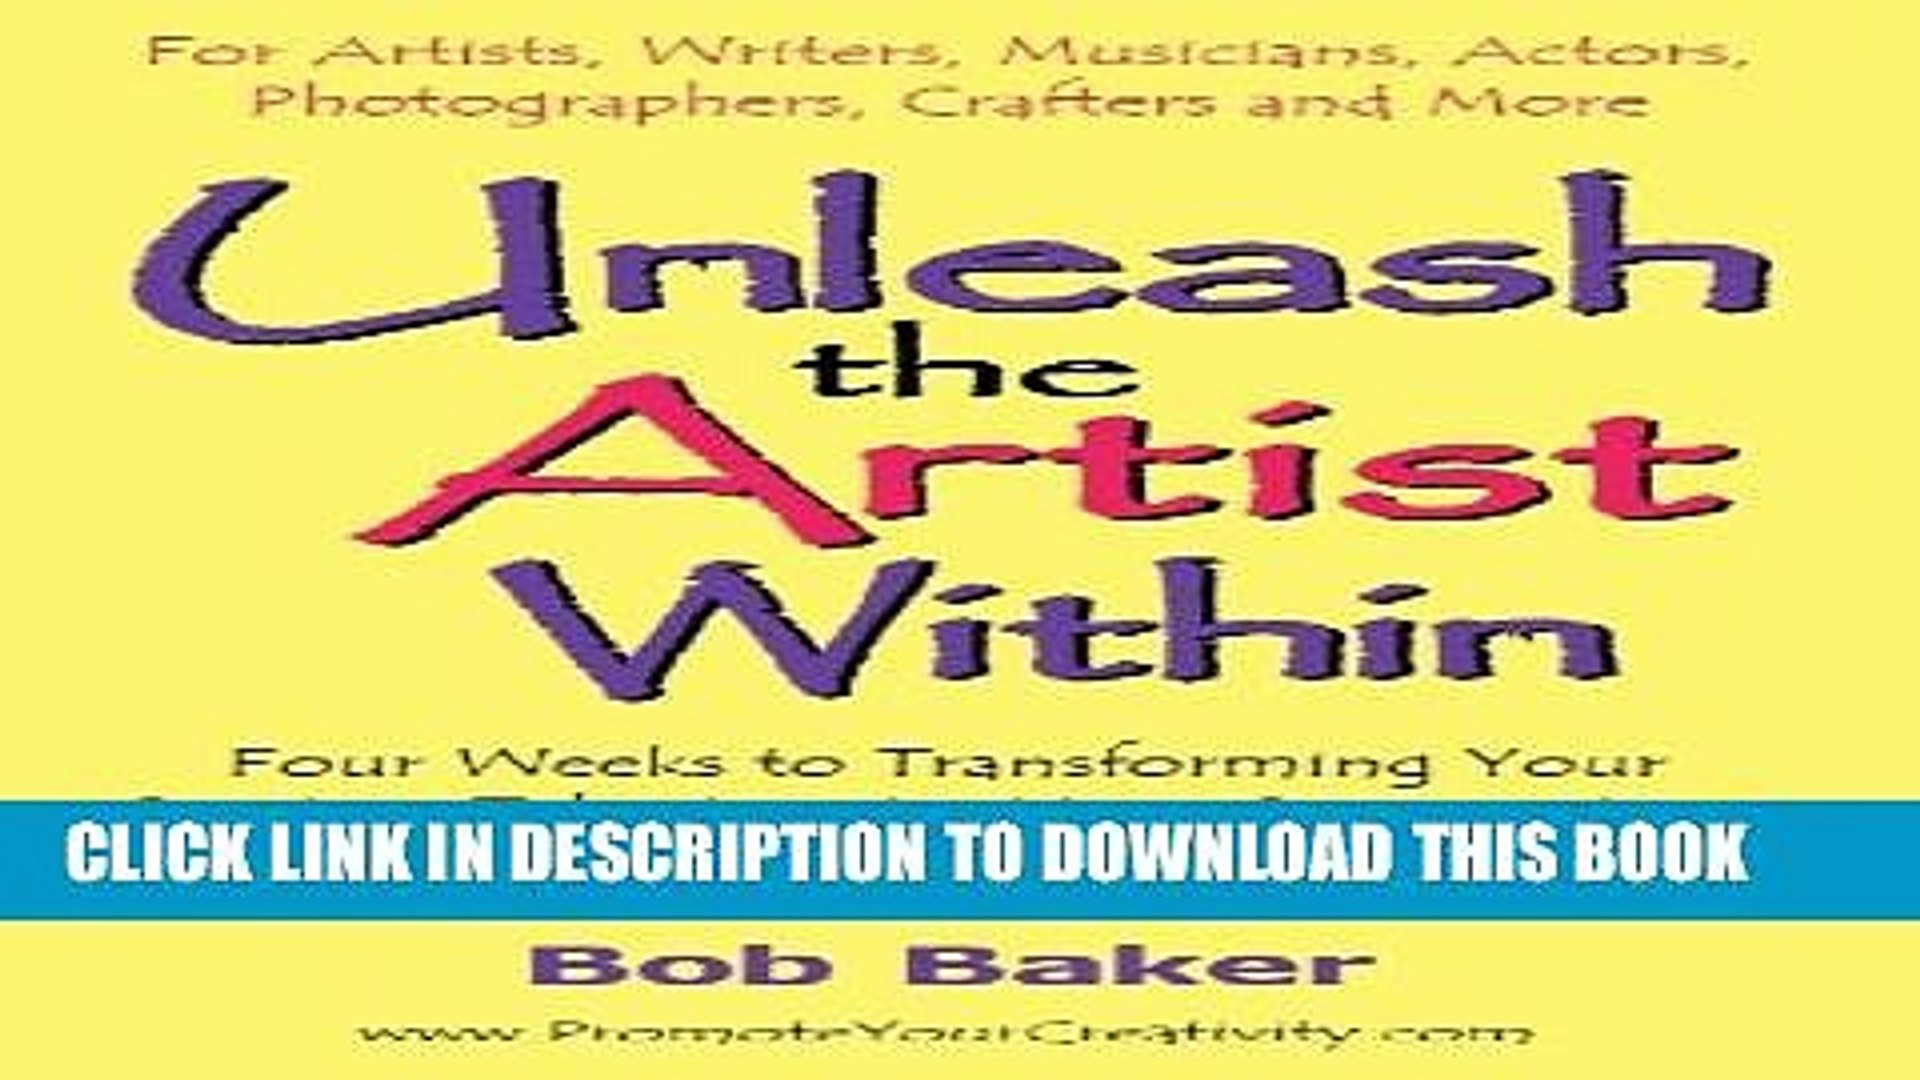 New Book Unleash the Artist Within: Four Weeks to Transforming Your Creative Talents Into More